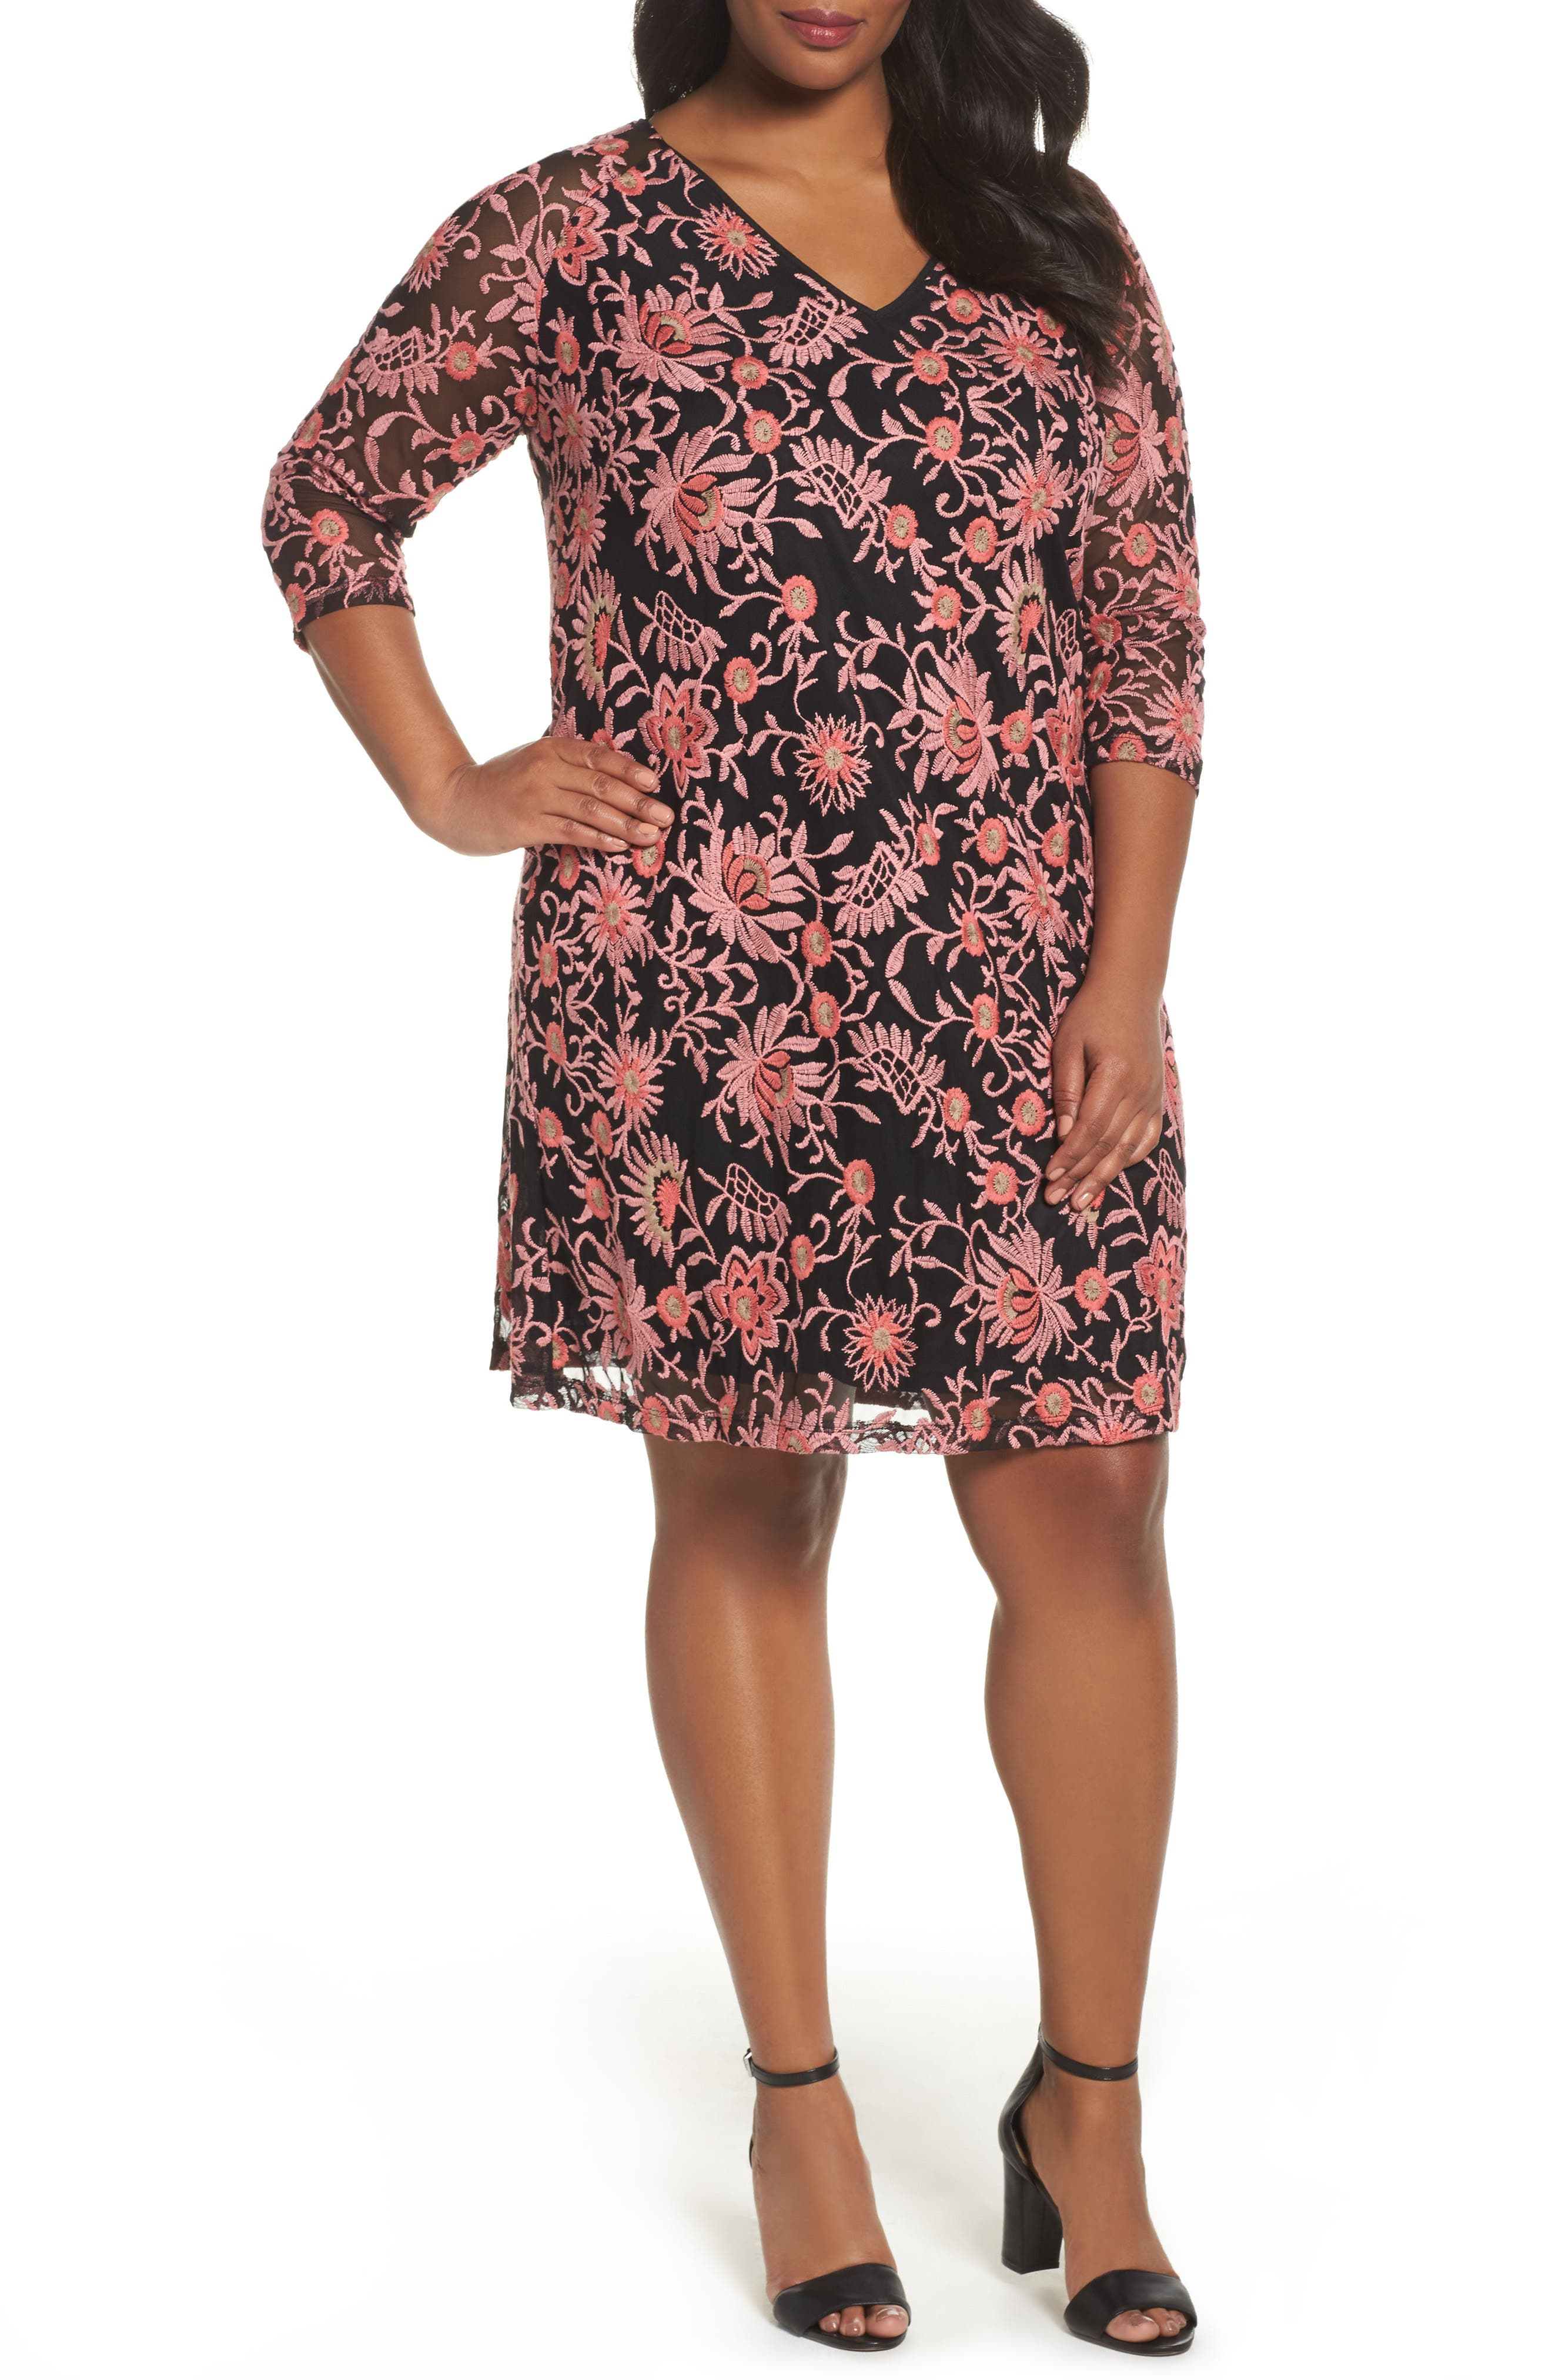 Alternate Image 1 Selected - Adrianna Papell Marrakesh Embroidered Trapeze Dress (Plus Size)